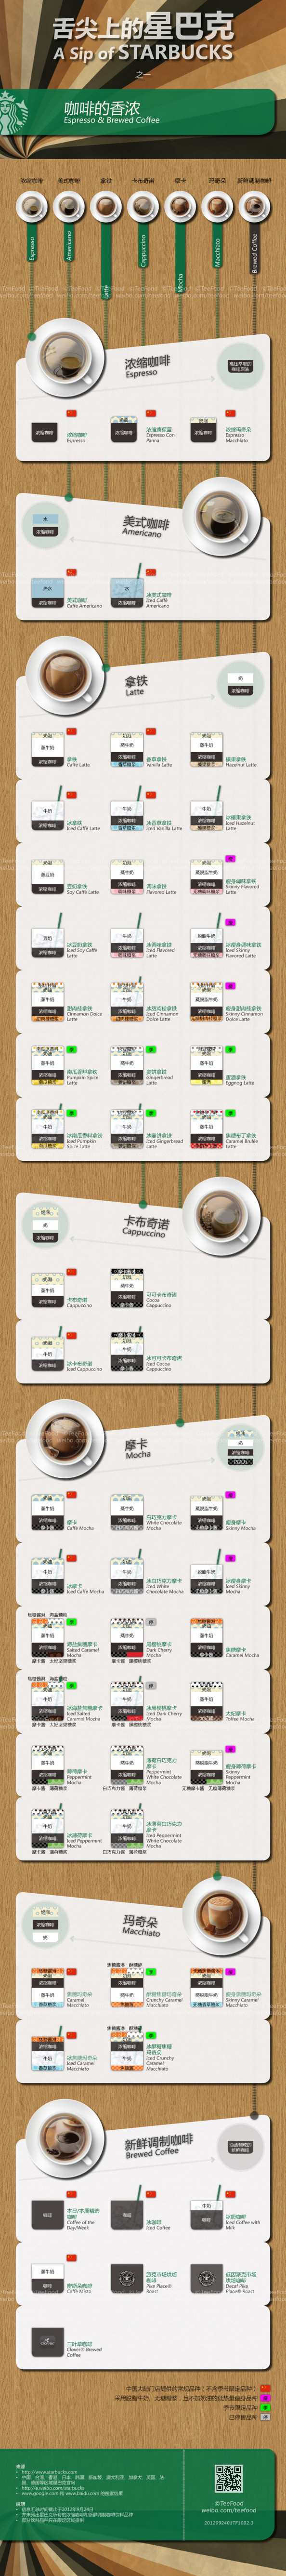 A Sip of STARBUCKS - 1 Infographic